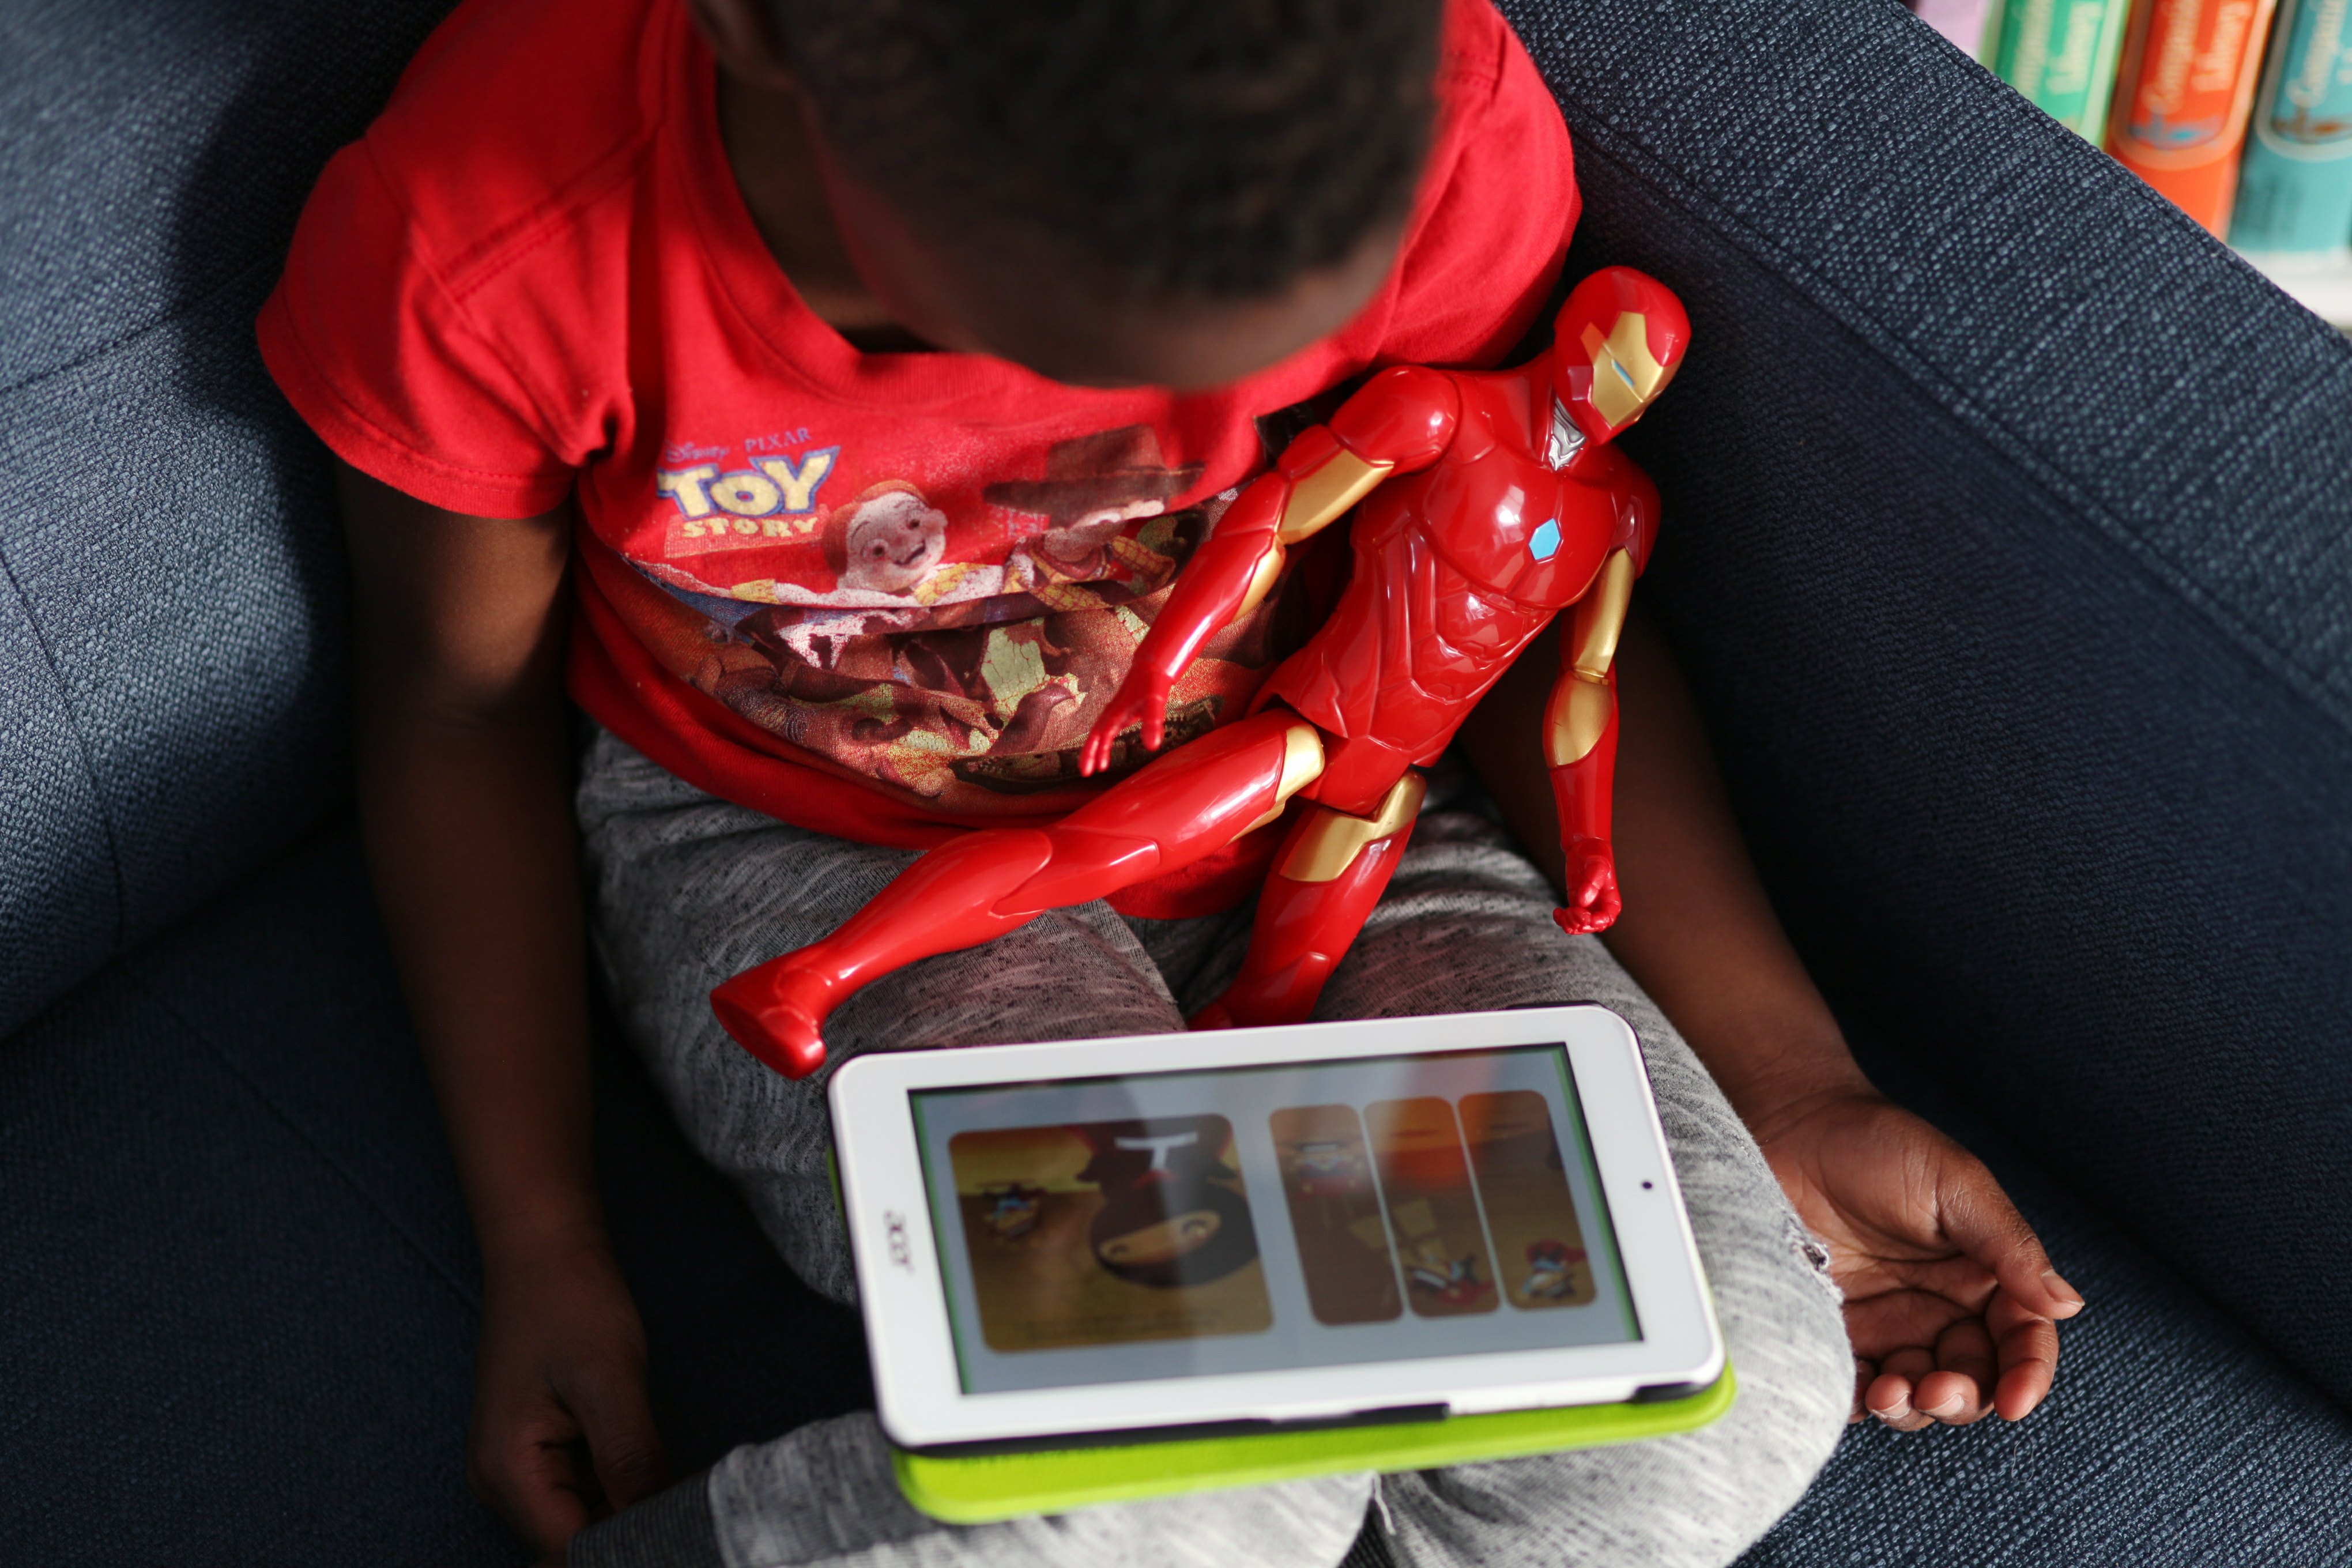 Using Digital Books in Our Homeschool - Plus while we are travelling!